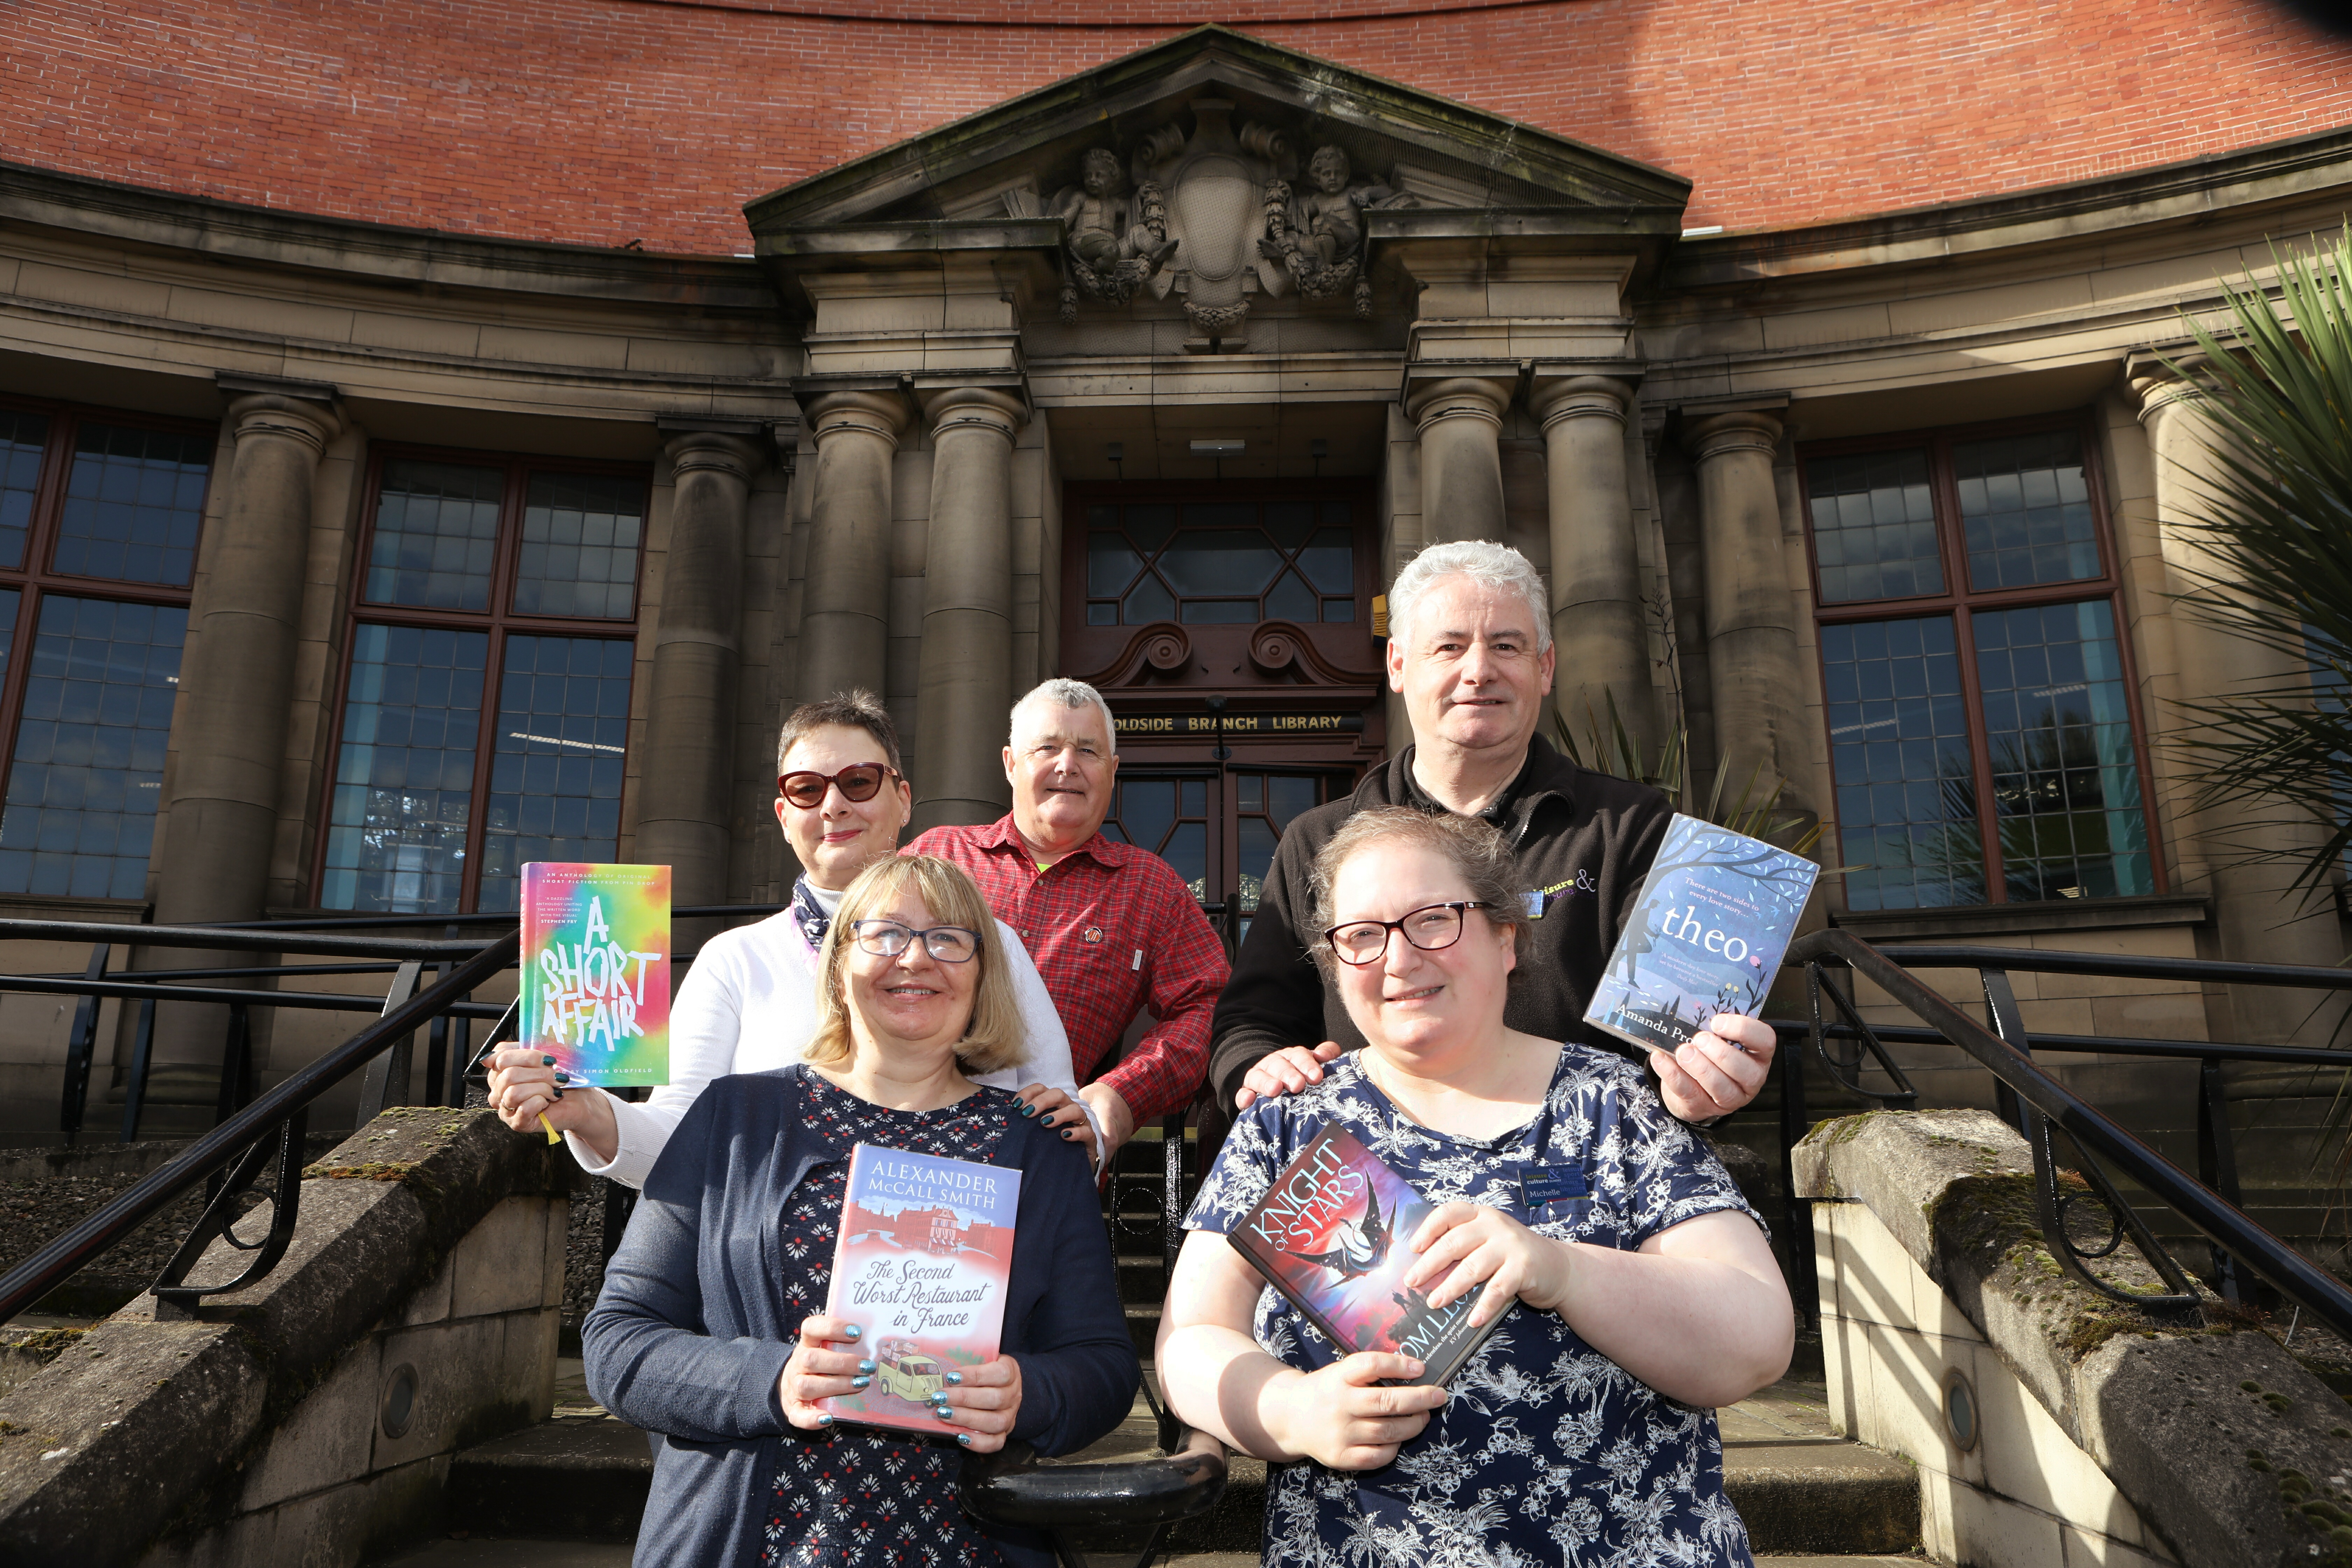 George Laidlaw (lead trustee for libraries), John Horsburgh (Dundee Leisure and Culture), Katie Clapson (assistant), Susan Ferguson (library and information assistant) and Michelle Cochrane (assistant).